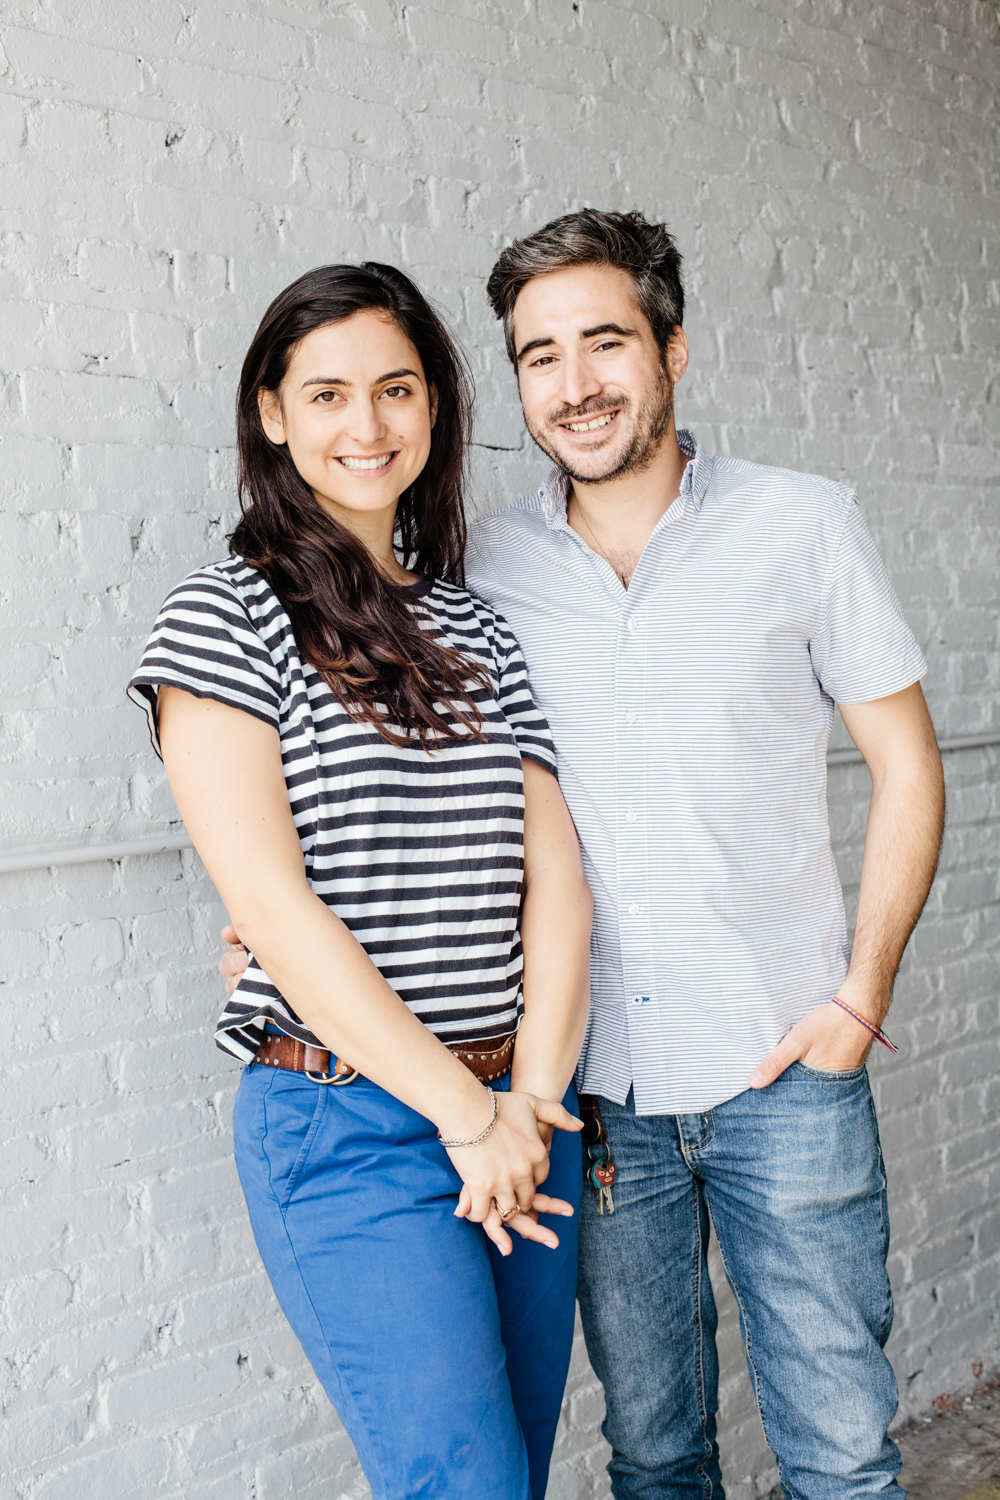 Kimmee Arndt and Evan Hoffman, owners, Greenpoint Trading Co.